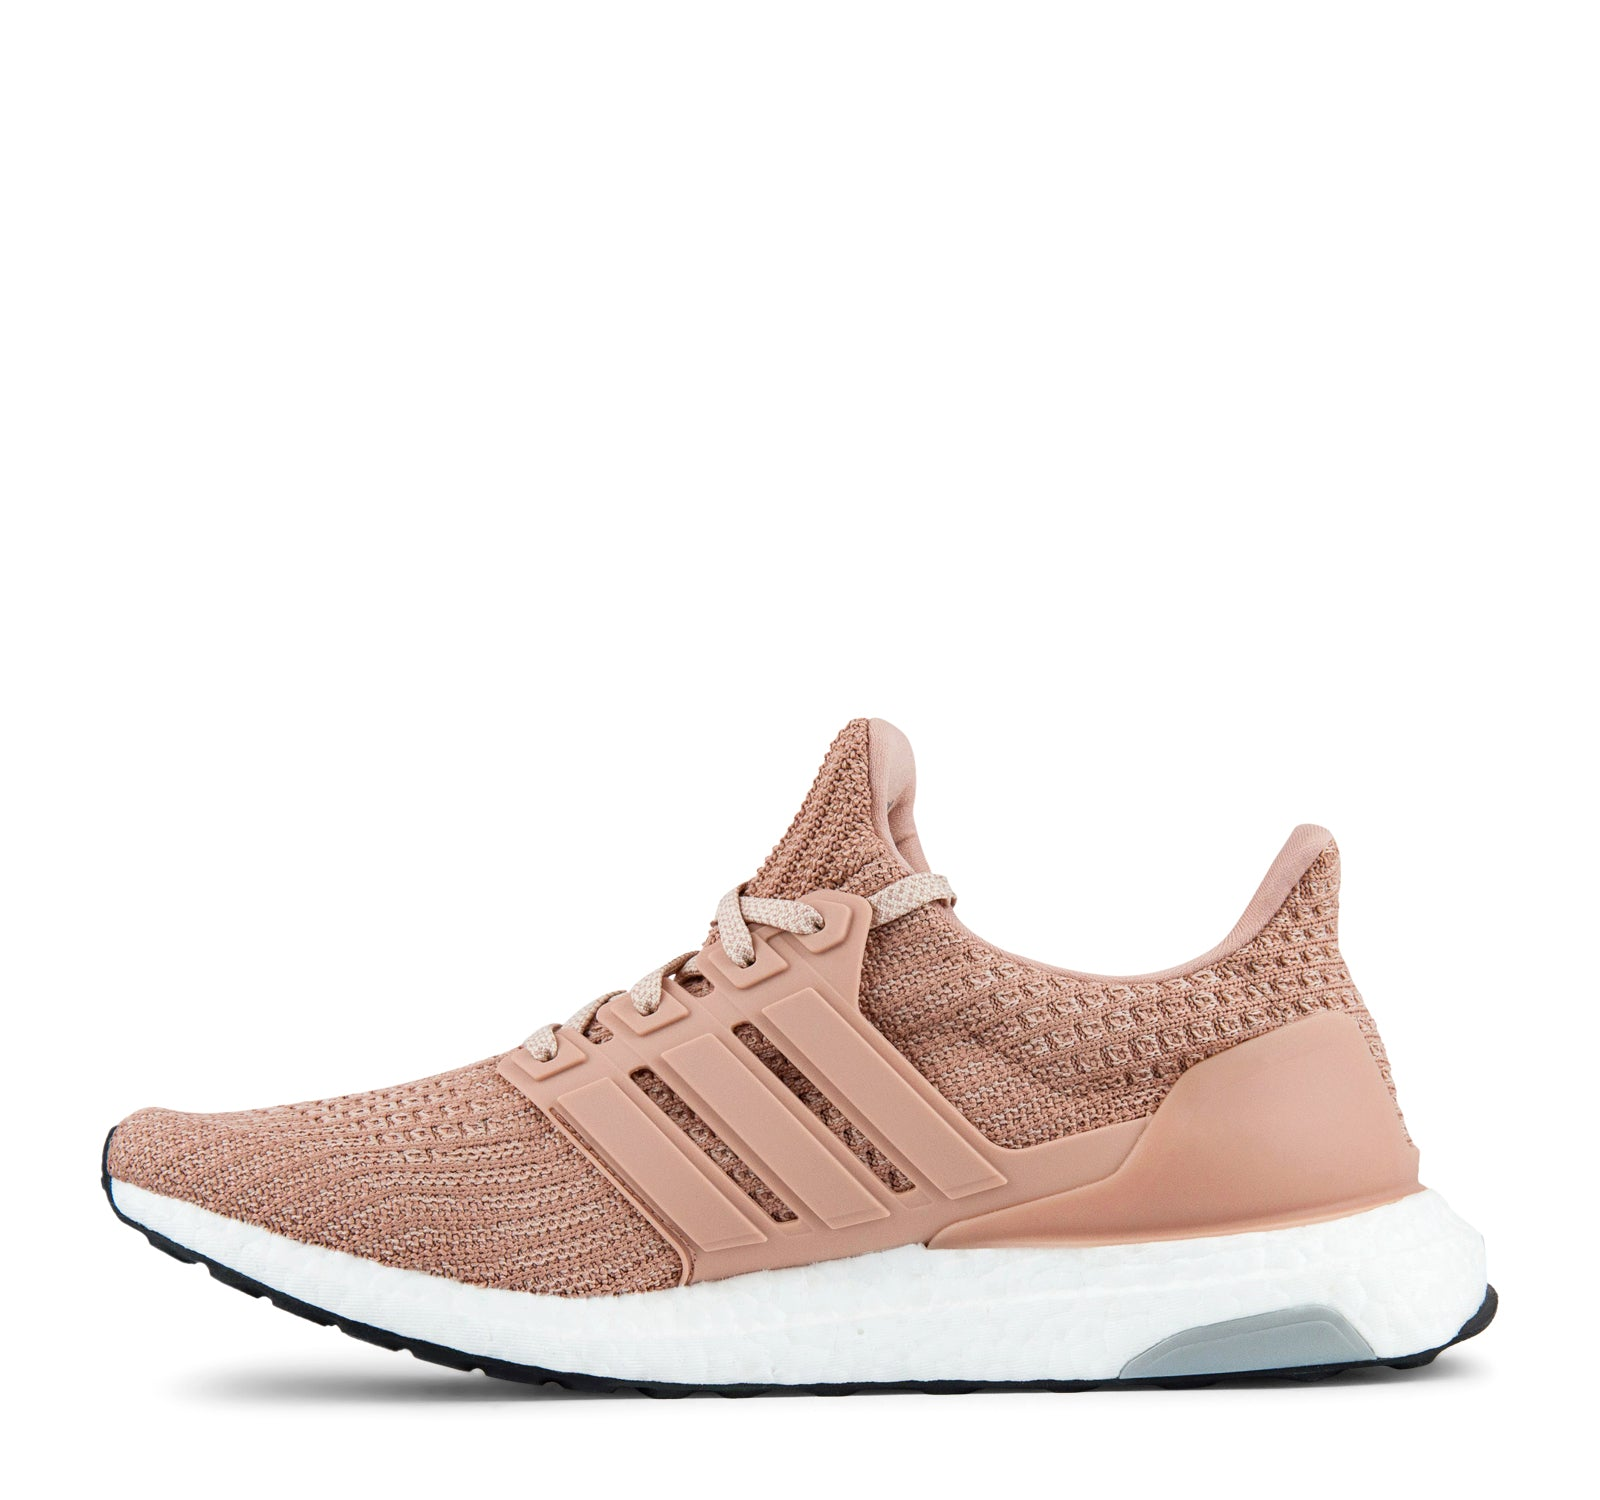 823d5d3db60 ... Adidas UltraBOOST BB6309 Women s Sneaker in Ash Pearl - Adidas - On The  EDGE ...